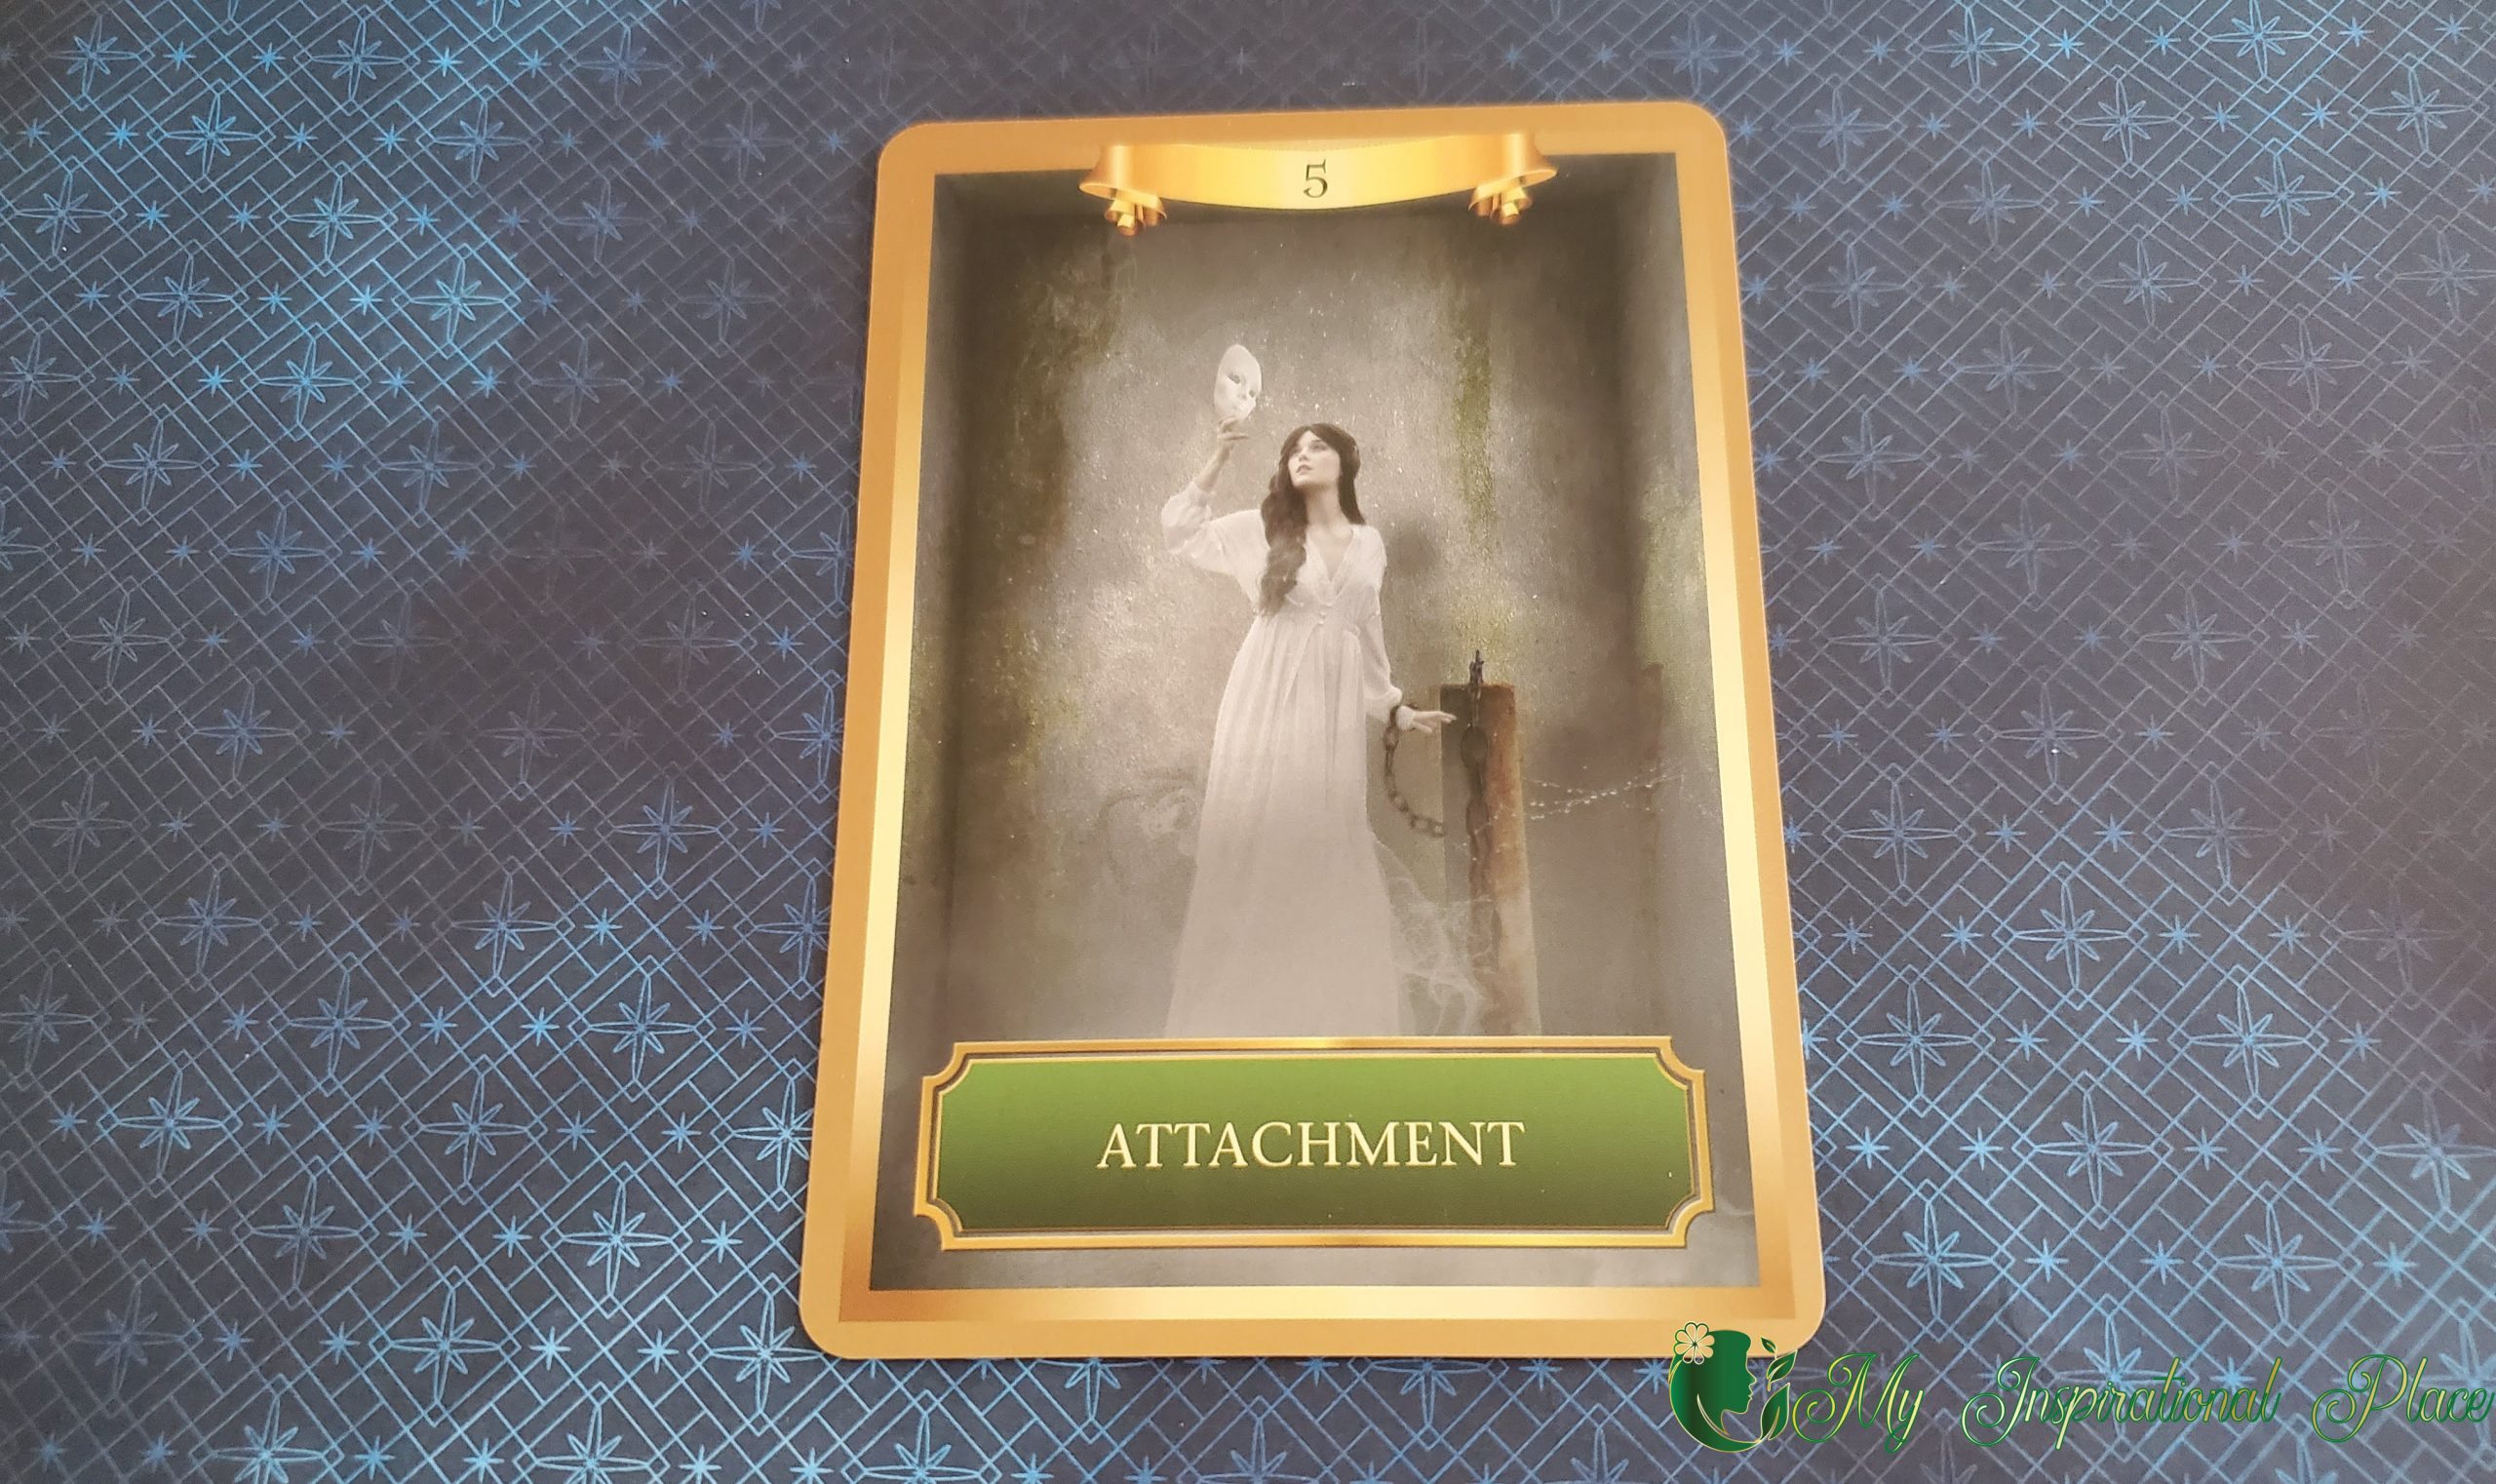 Card of the Day for May 13, 2020 – Attachment